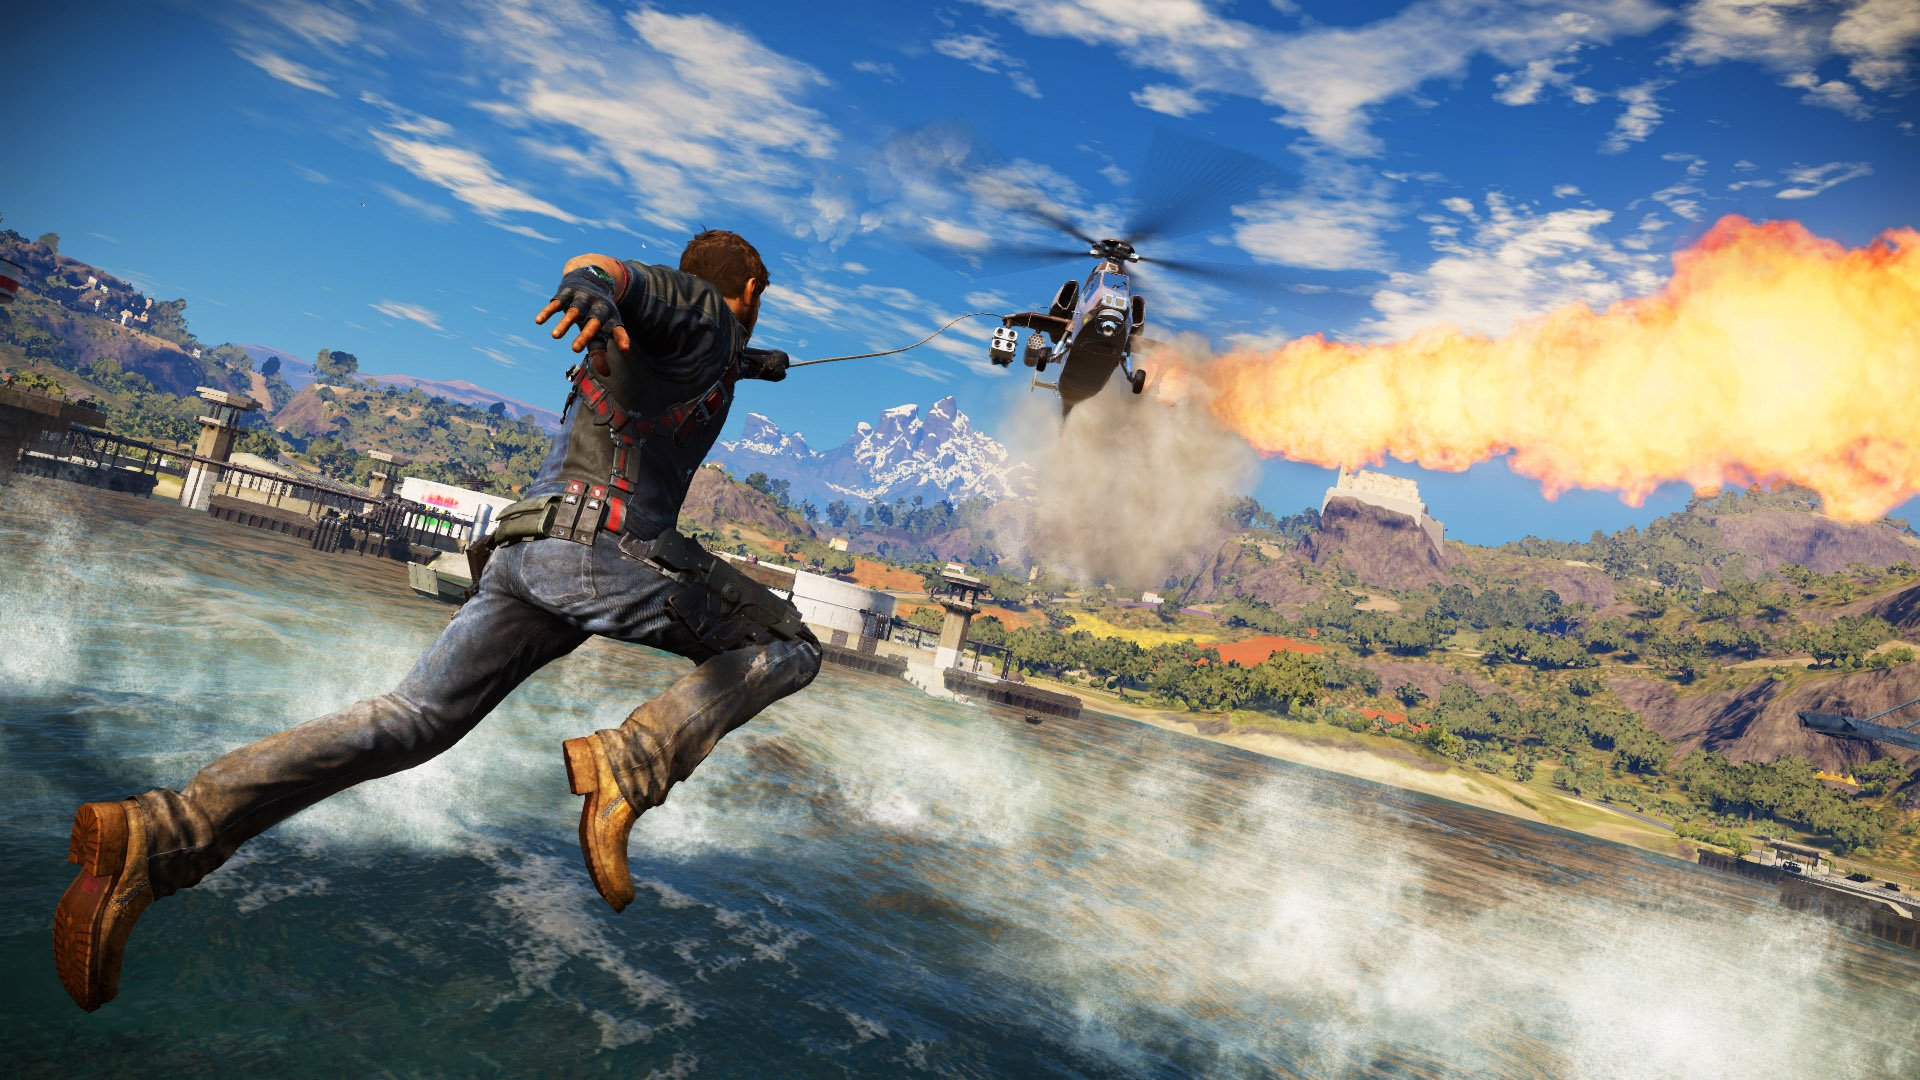 Just Cause 3 Wallpapers, Pictures, Images